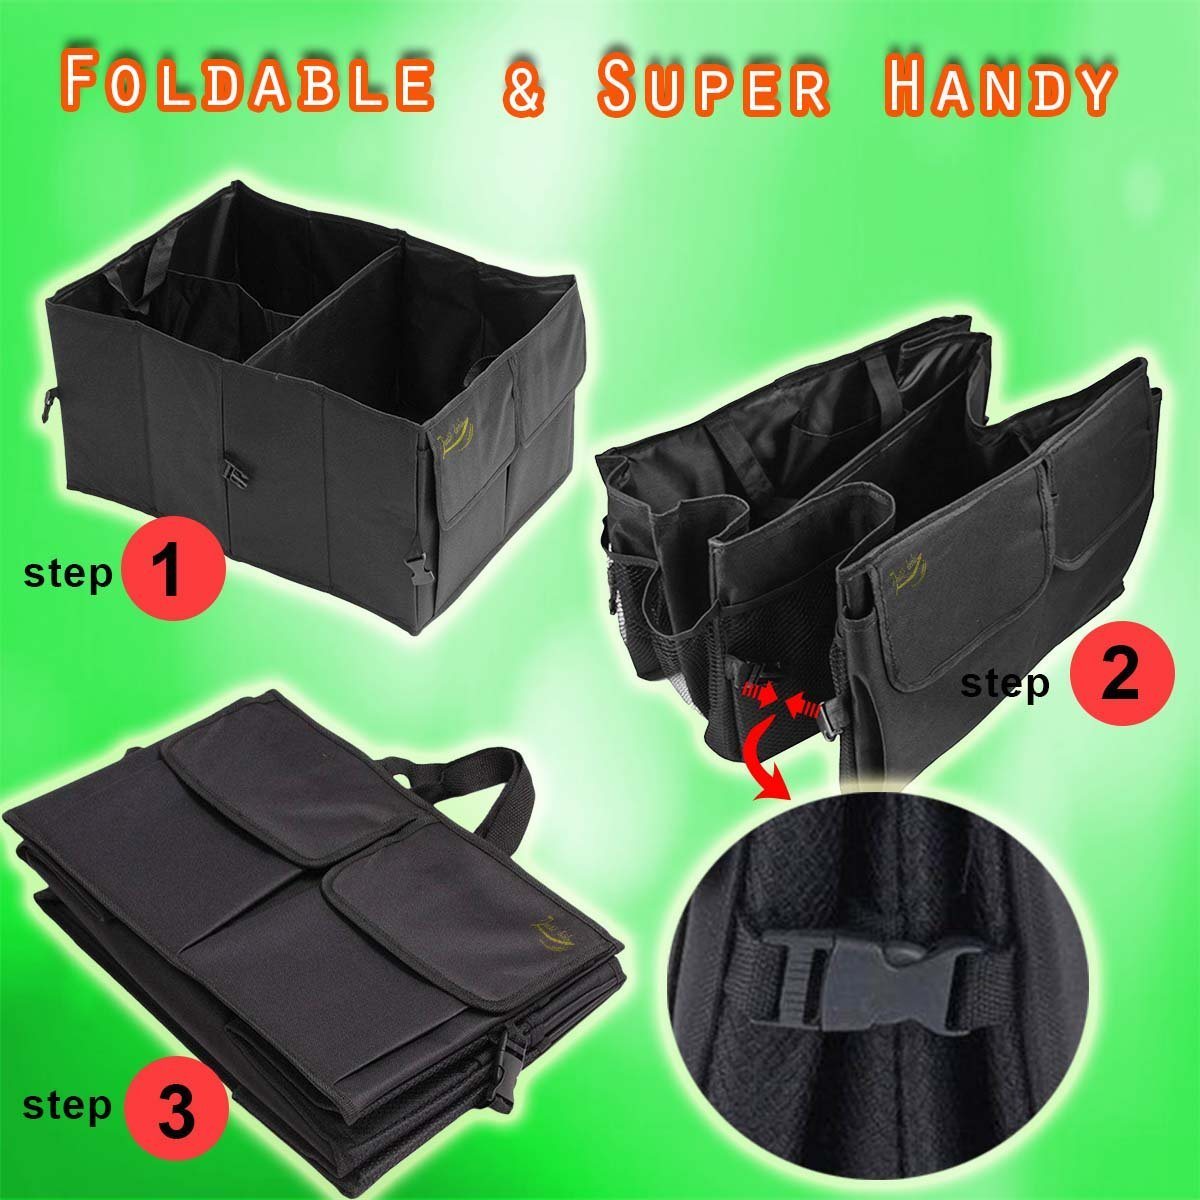 Zento Deals Black Multipurpose Foldable Vehicle Organizer OR7